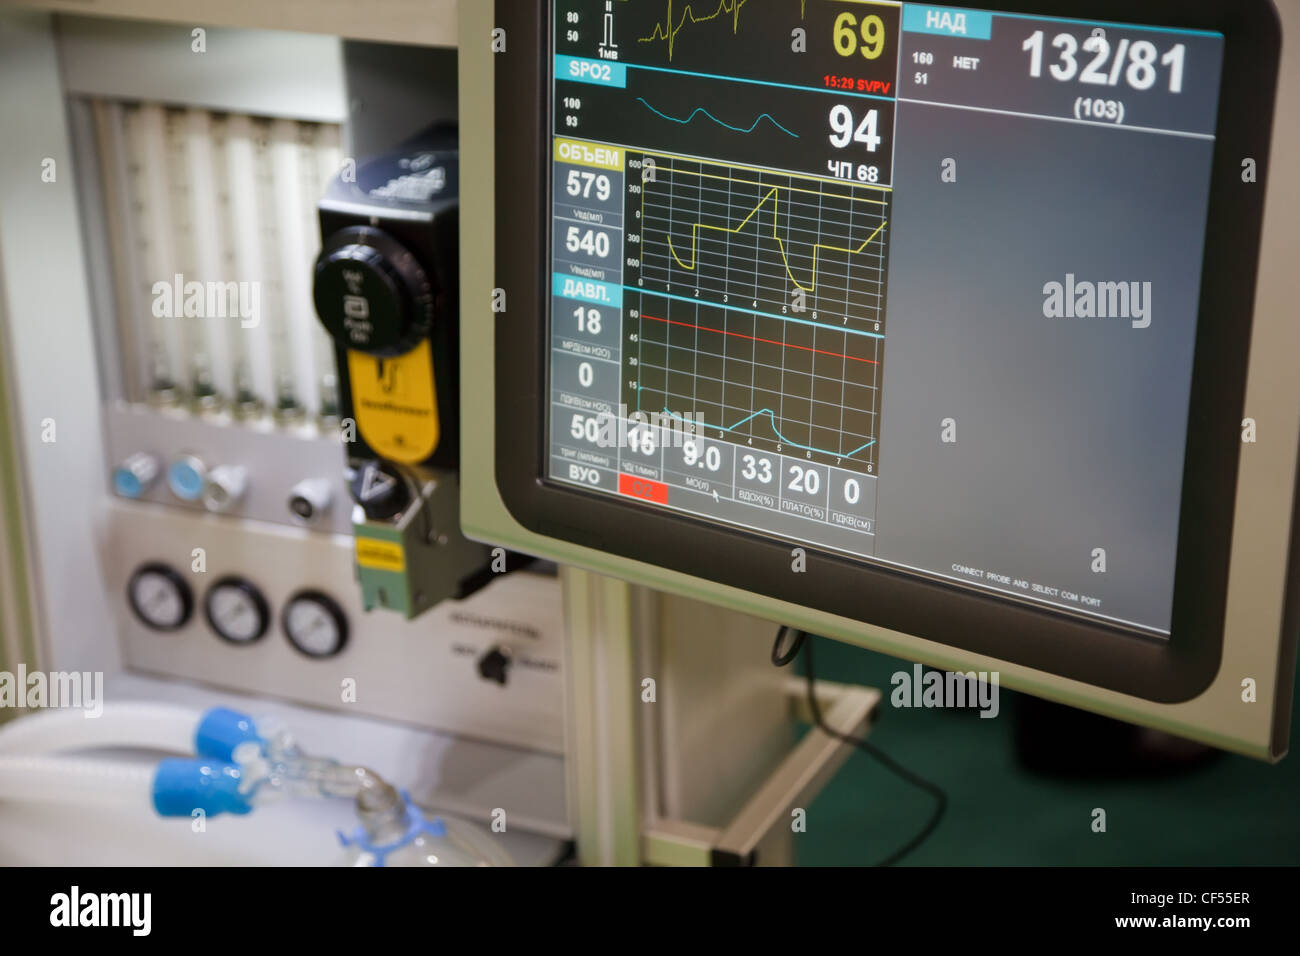 Resuscitation, system anapnotherapy. Monitor with health data based. - Stock Image